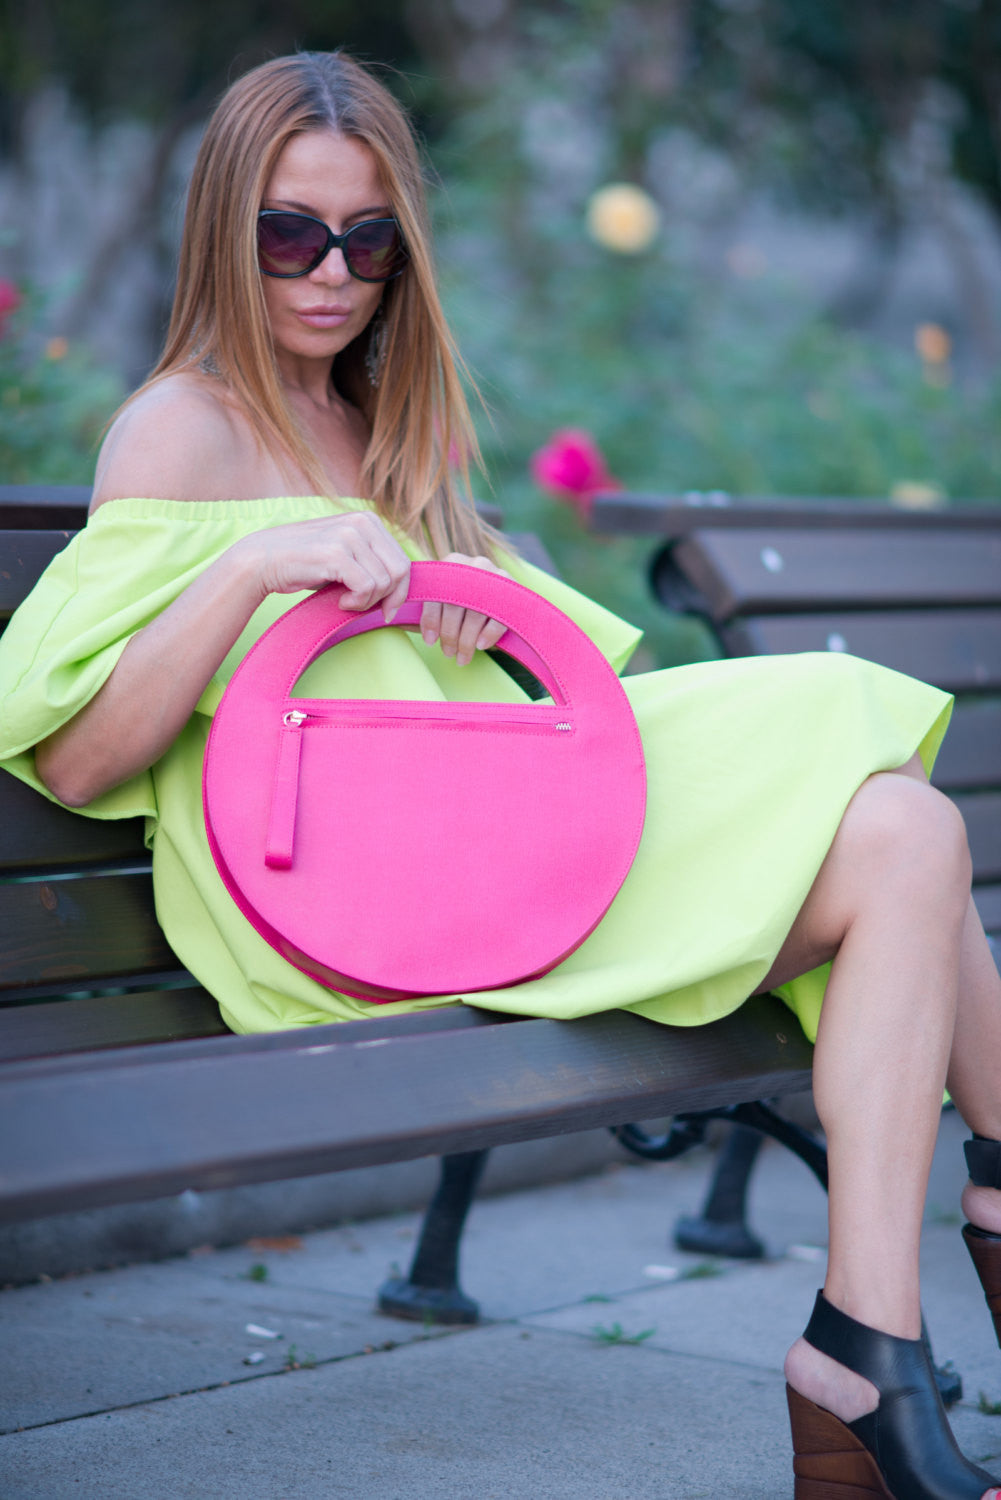 Clutch purse, Pink Genuine Leather Clutch Hand Bag, High Quality Italian Clutch Purse, Borsa bella